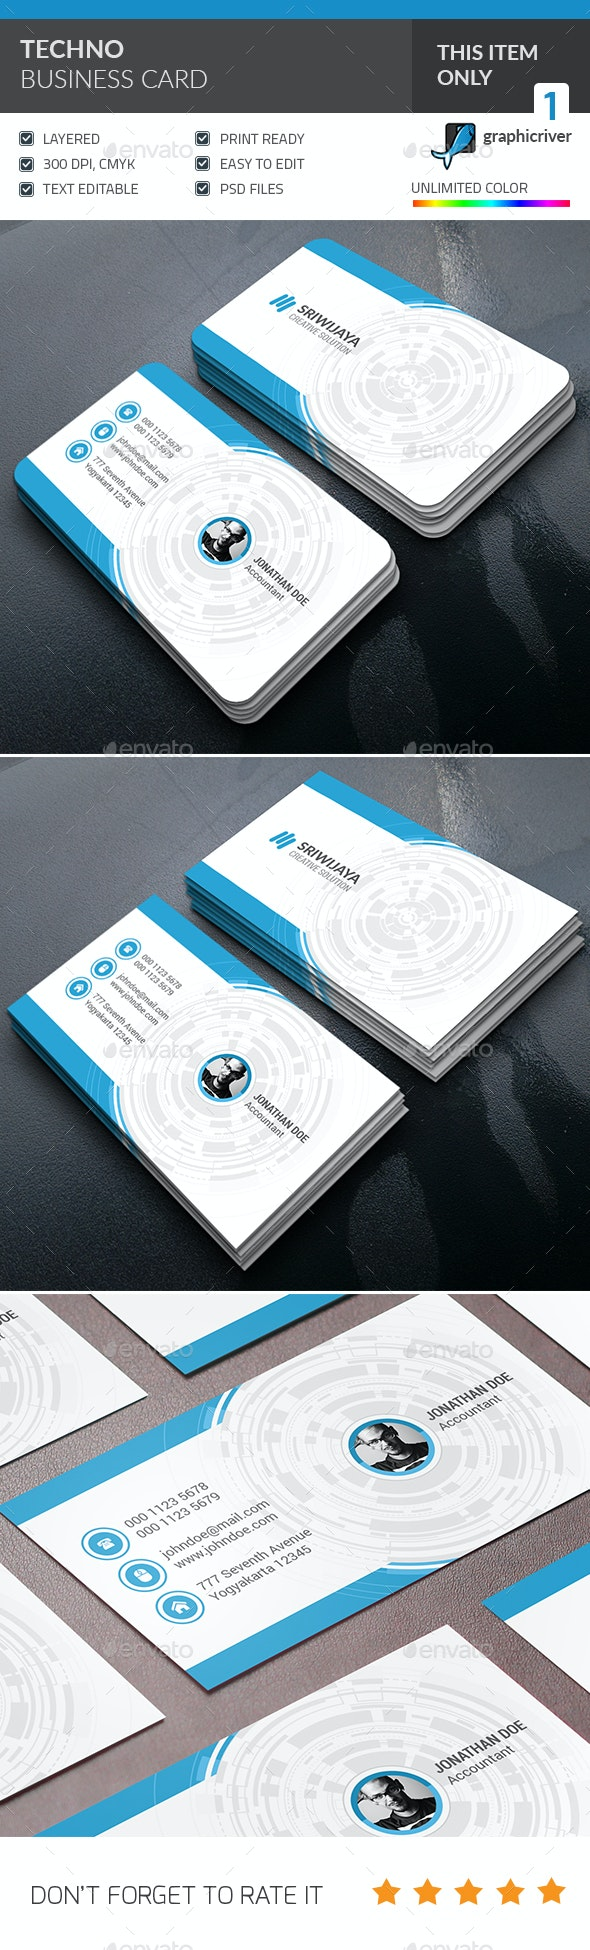 Techno Business Card - Corporate Business Cards